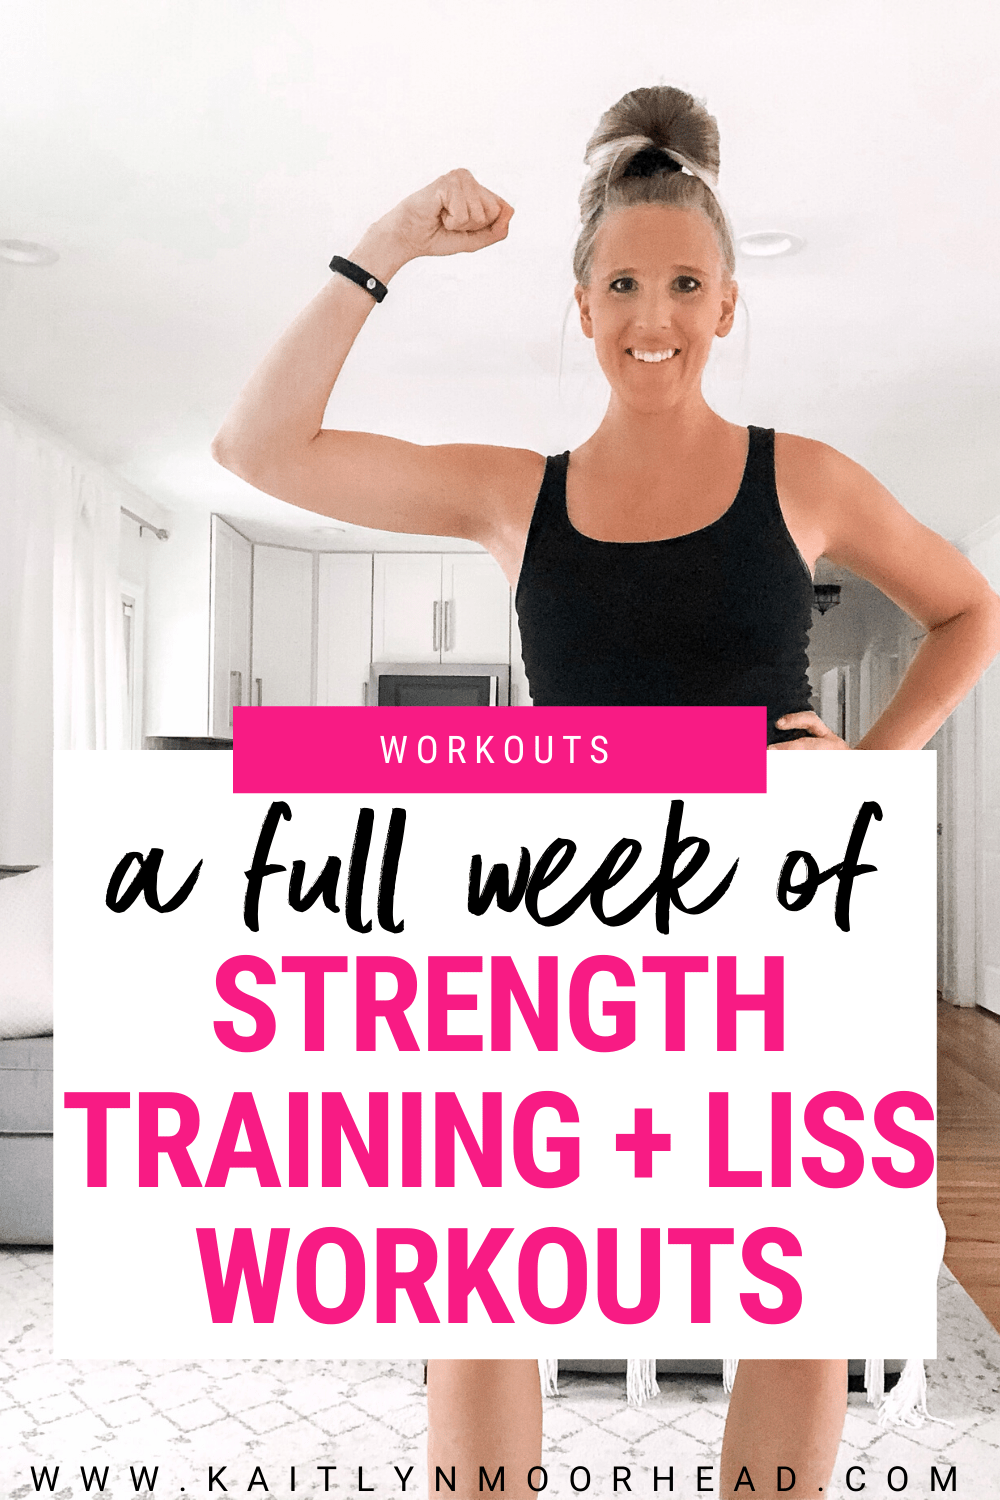 This FREE 7-day workout plan for women can be done at home or at a gym with just a few sets of dumbbells! Ready to see results? In just 30 minutes, these weightlifting workouts raise your heart rate, build muscle, + help you lose weight! Each work out is broken down with daily guided workout videos. This challenge is perfect if you're looking for a fitness routine to keep you motivated + inspired to create a weekly fitness routine so you can see results. Click for your full week of workouts!